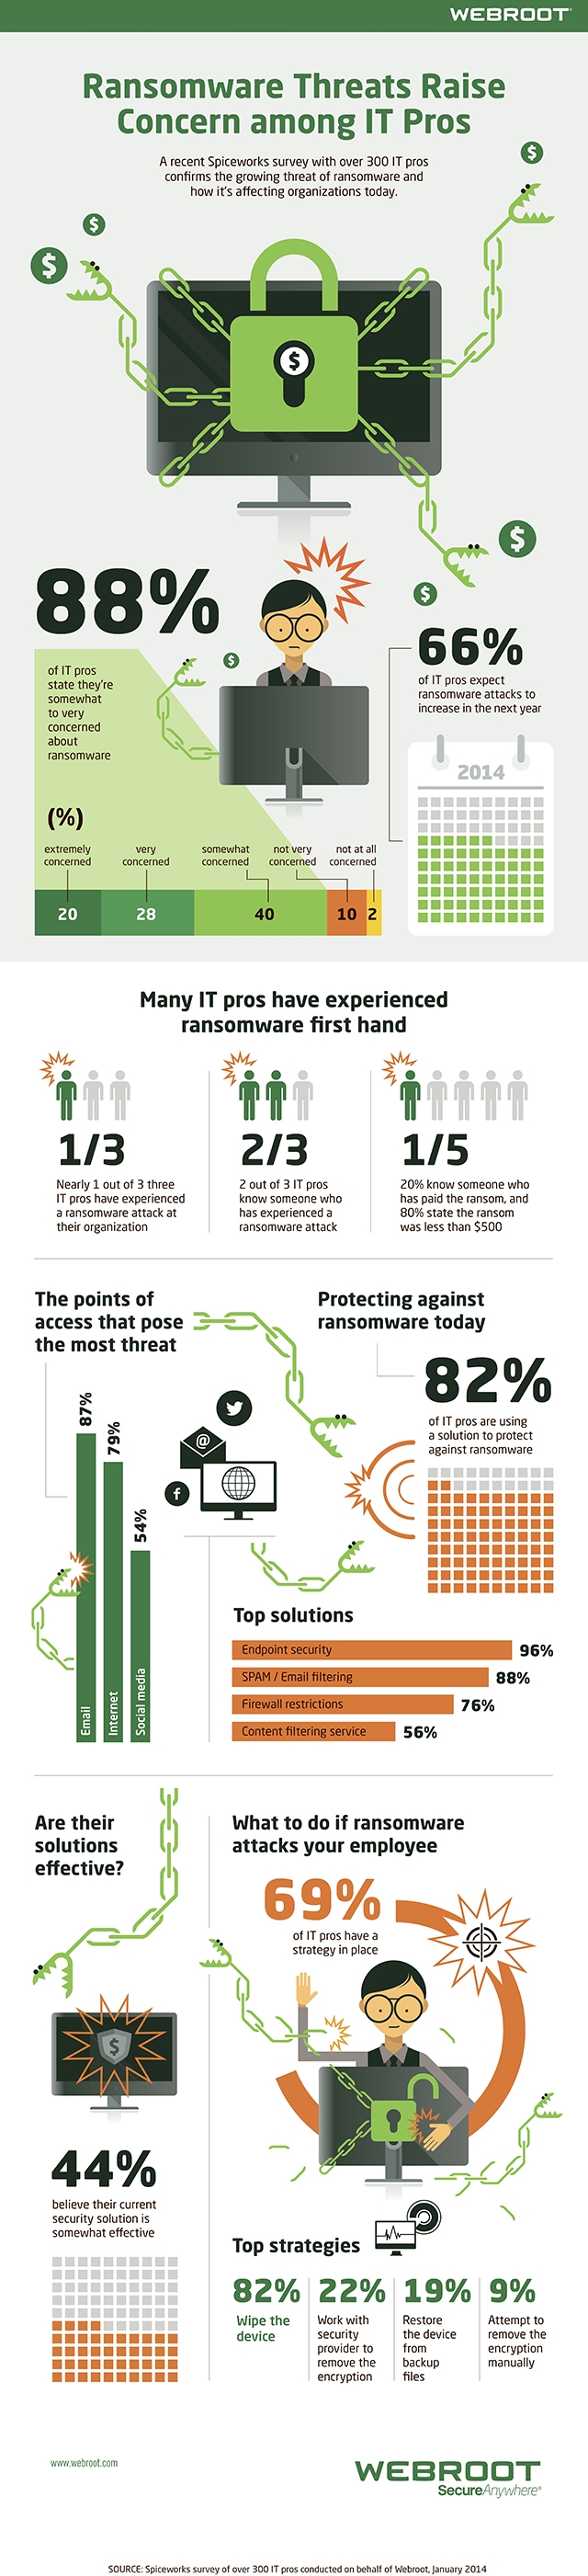 INFOGRAPHIC - Webroot - Ransomware Threats Raise Concern among I